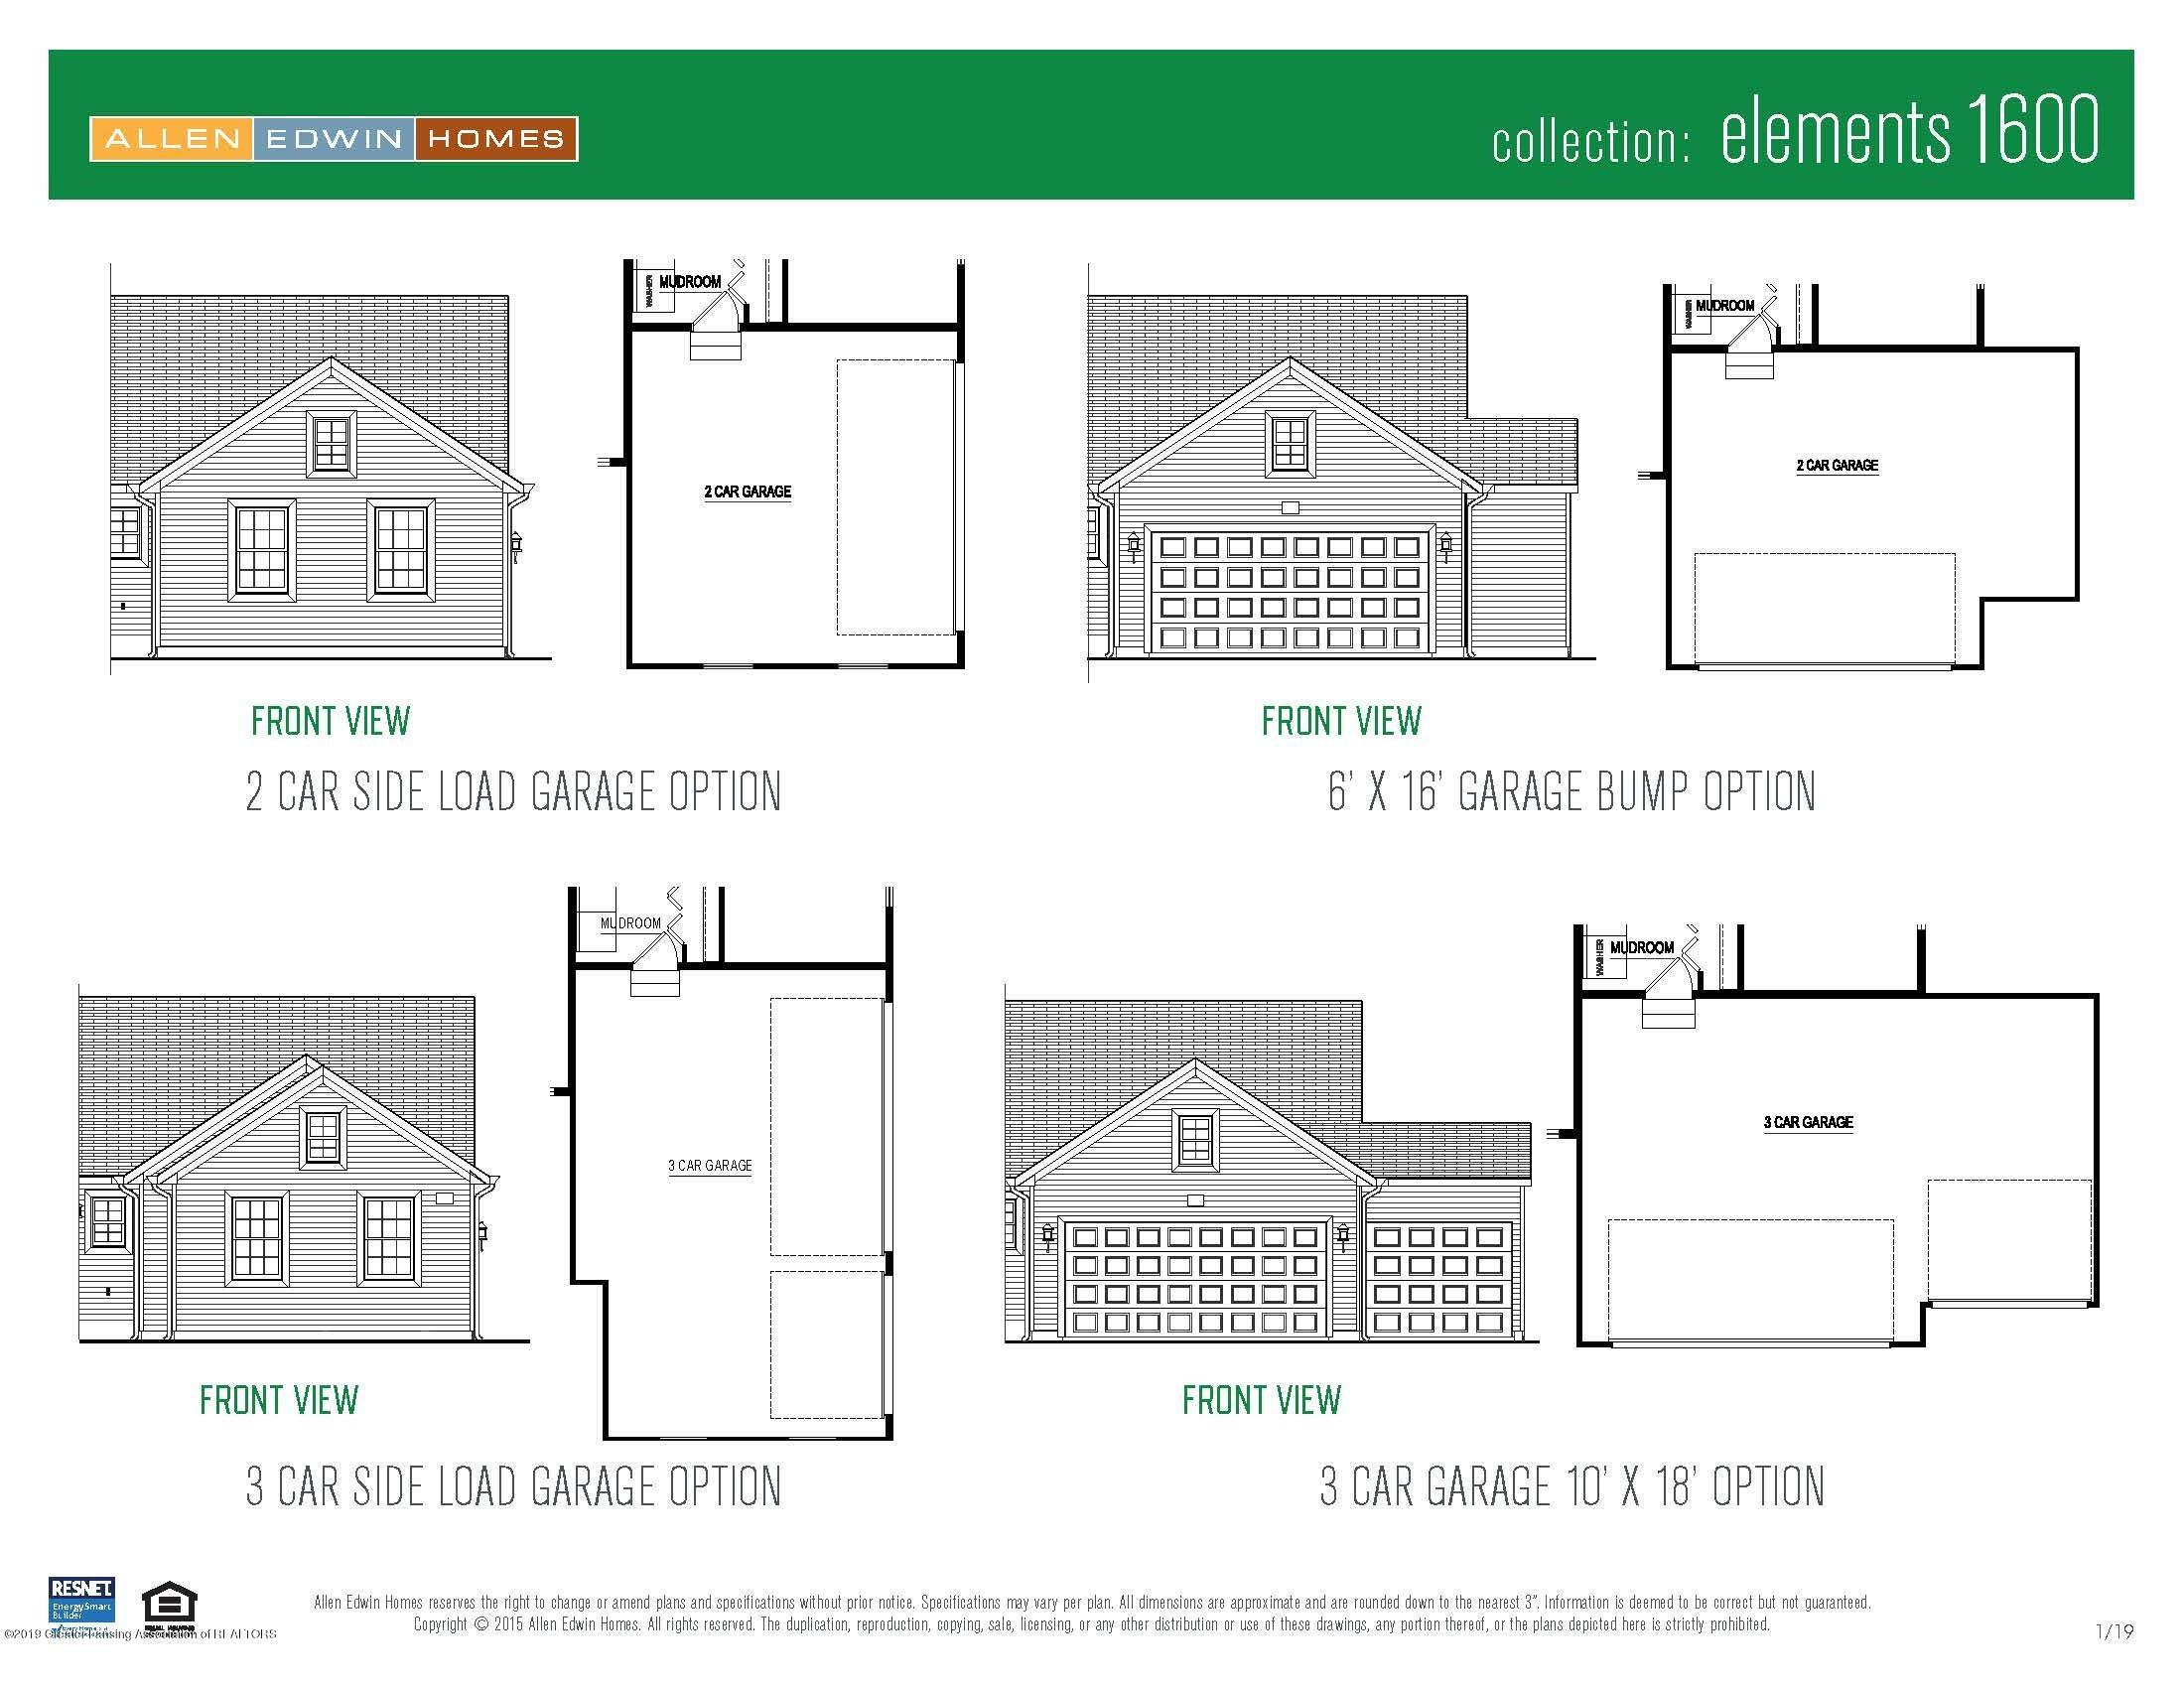 14171 Cordaleigh Dr - Elements 1600 - 17